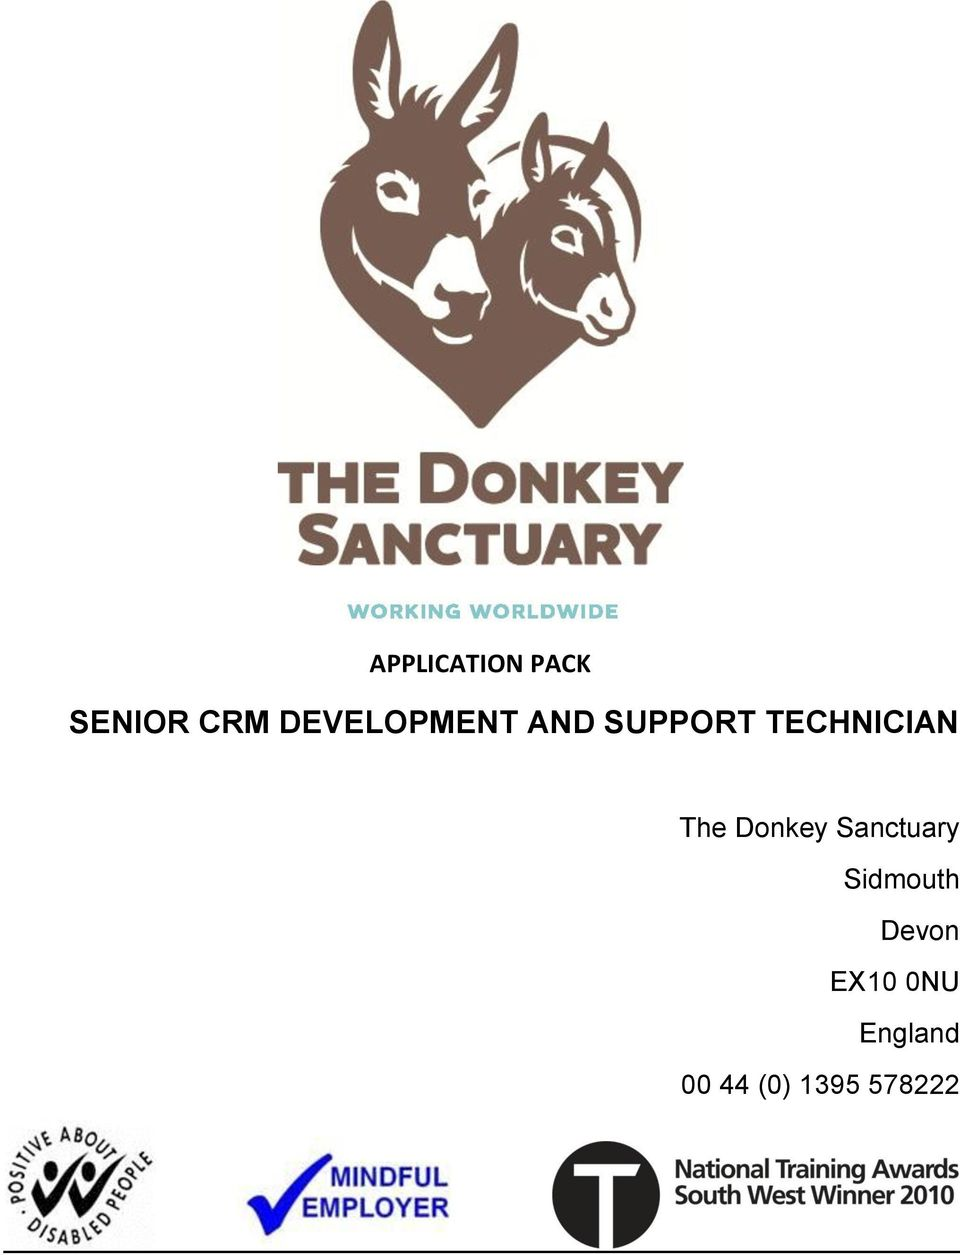 The Donkey Sanctuary Sidmouth